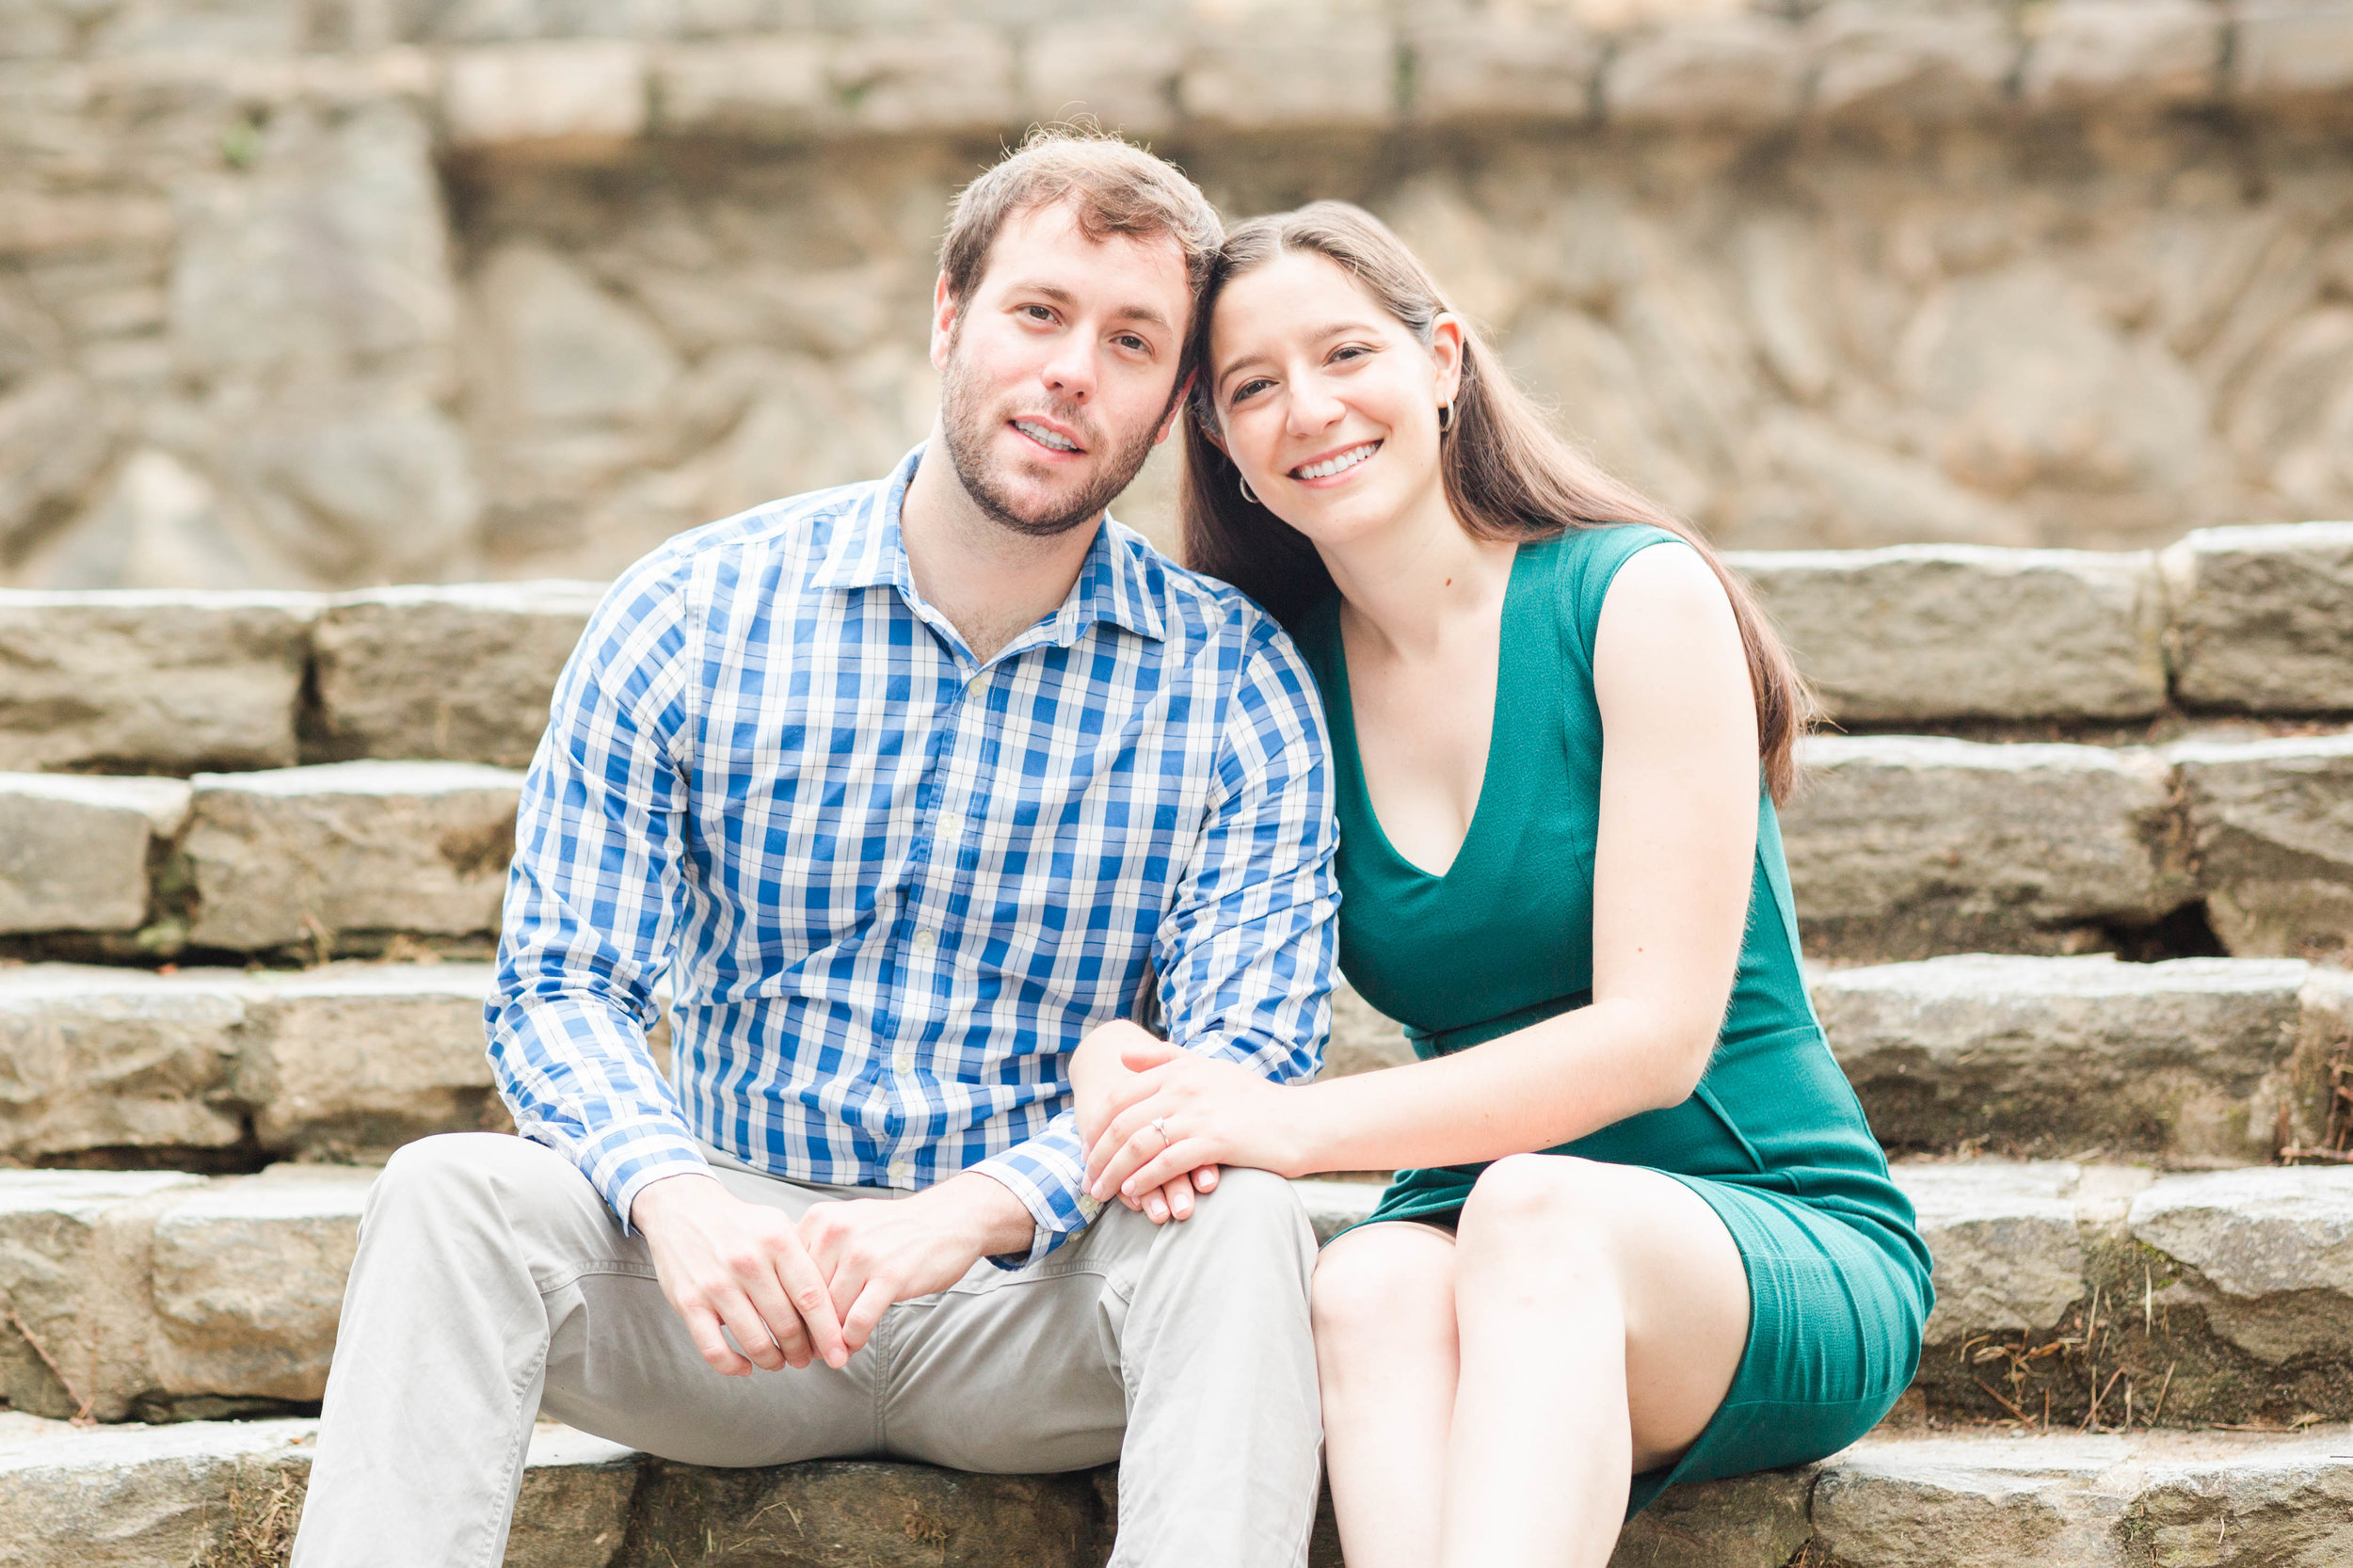 Katie_Pete_Engagement-24.JPG